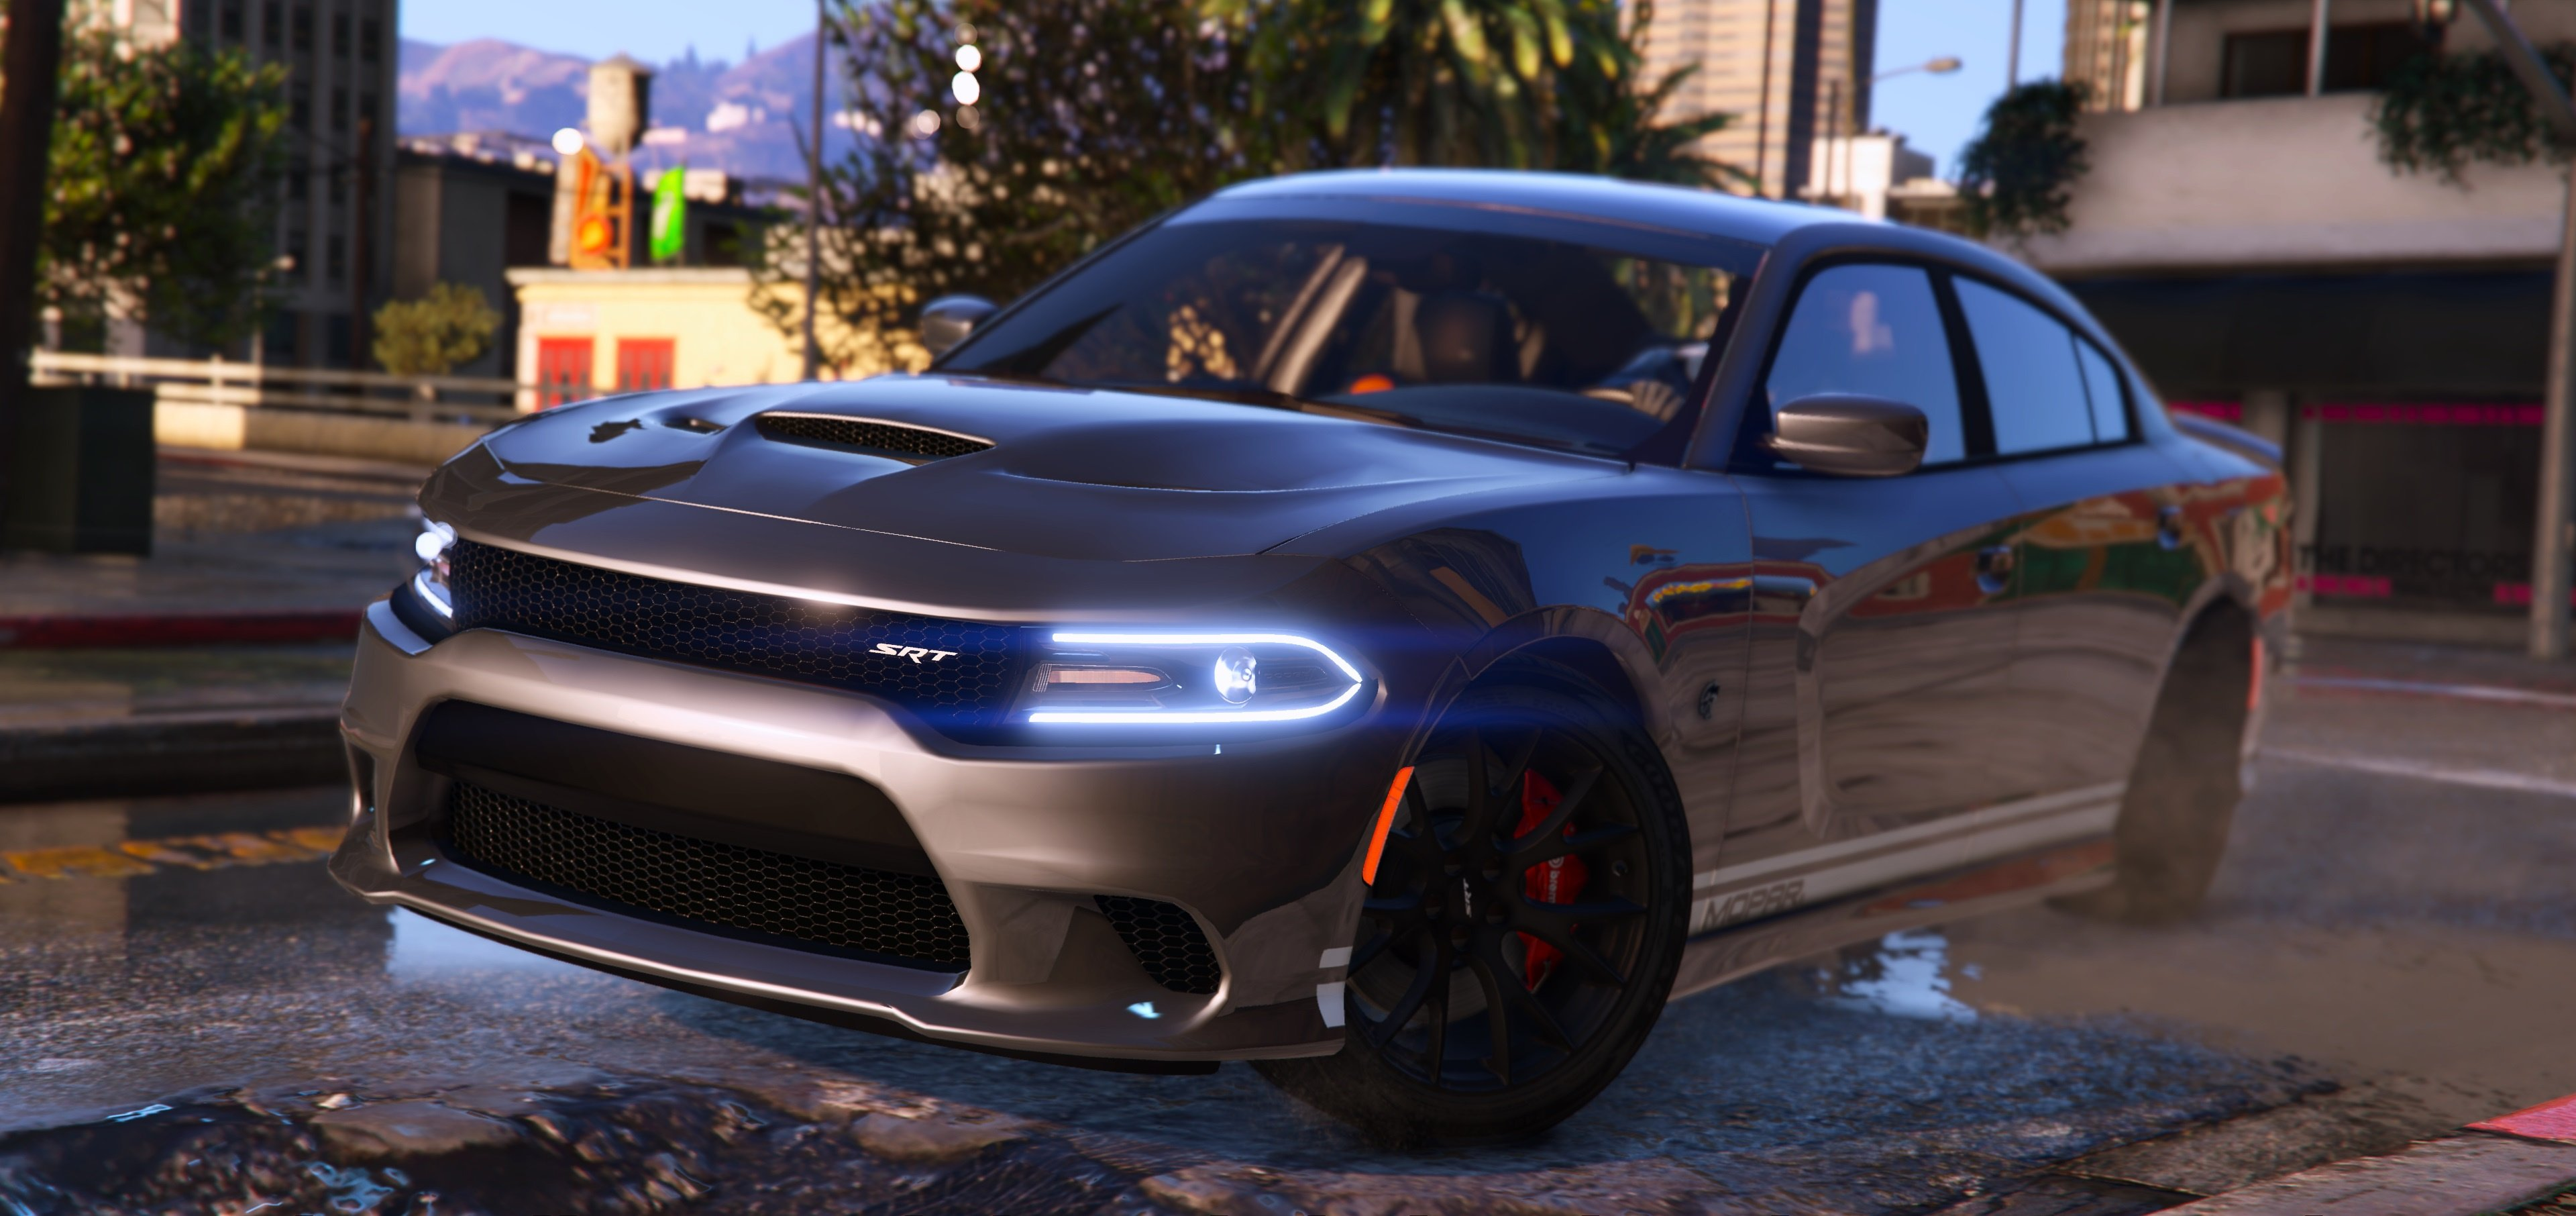 Gta 5 dodge charger